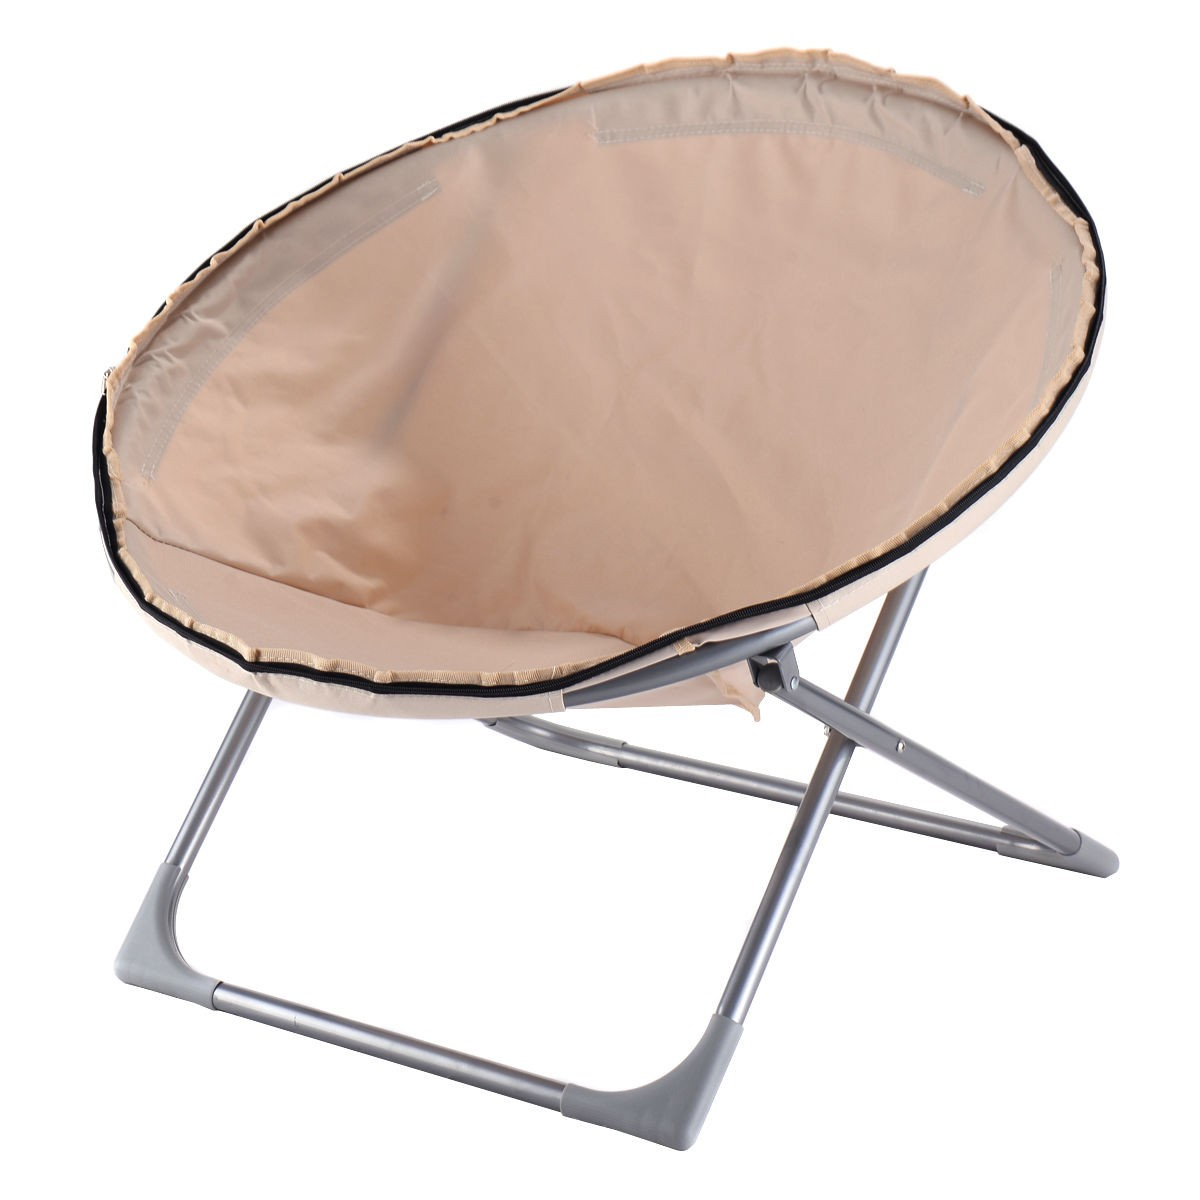 Beau Oversized Large Folding Saucer Moon Chair Corduroy Round Seat Living Room  Hot US